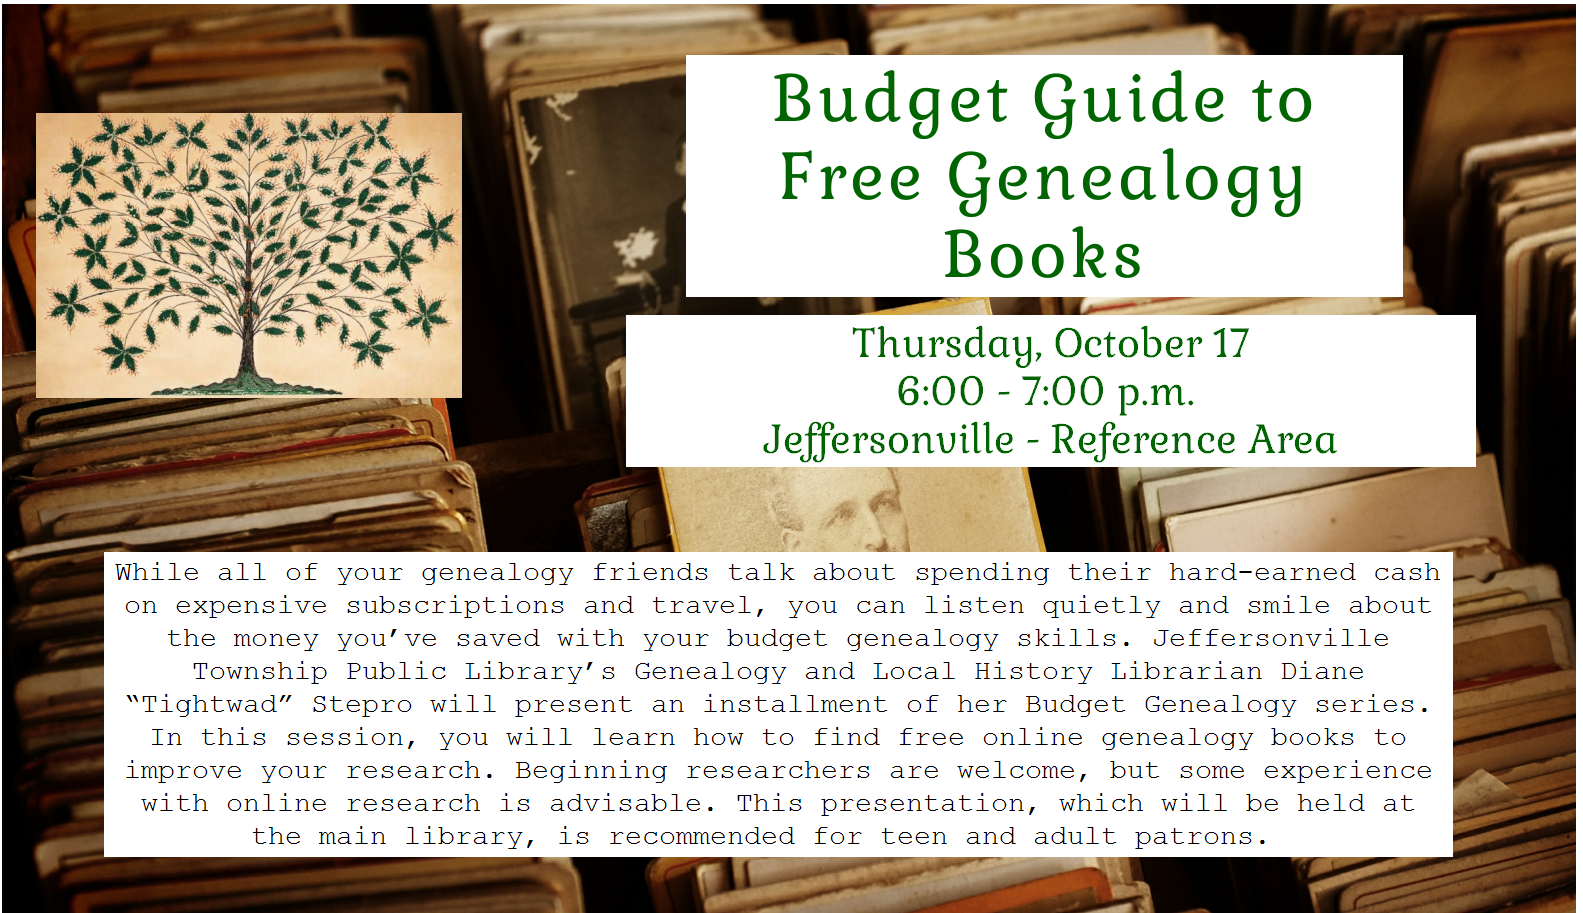 Budget Guide to Genealogy Books